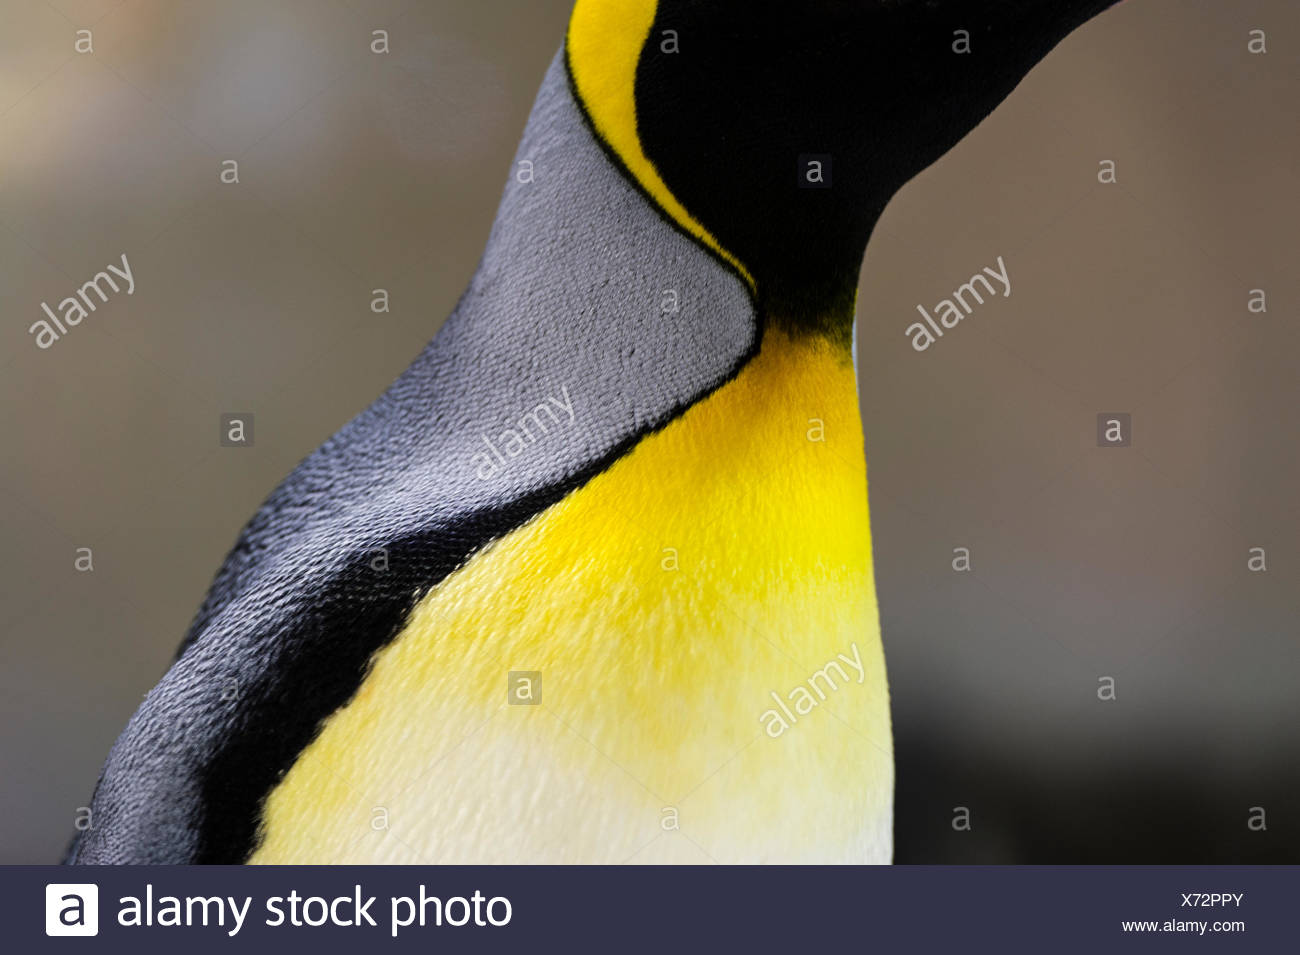 Bright yellow-orange feather plumage on the chest of a King Penguin. - Stock Image